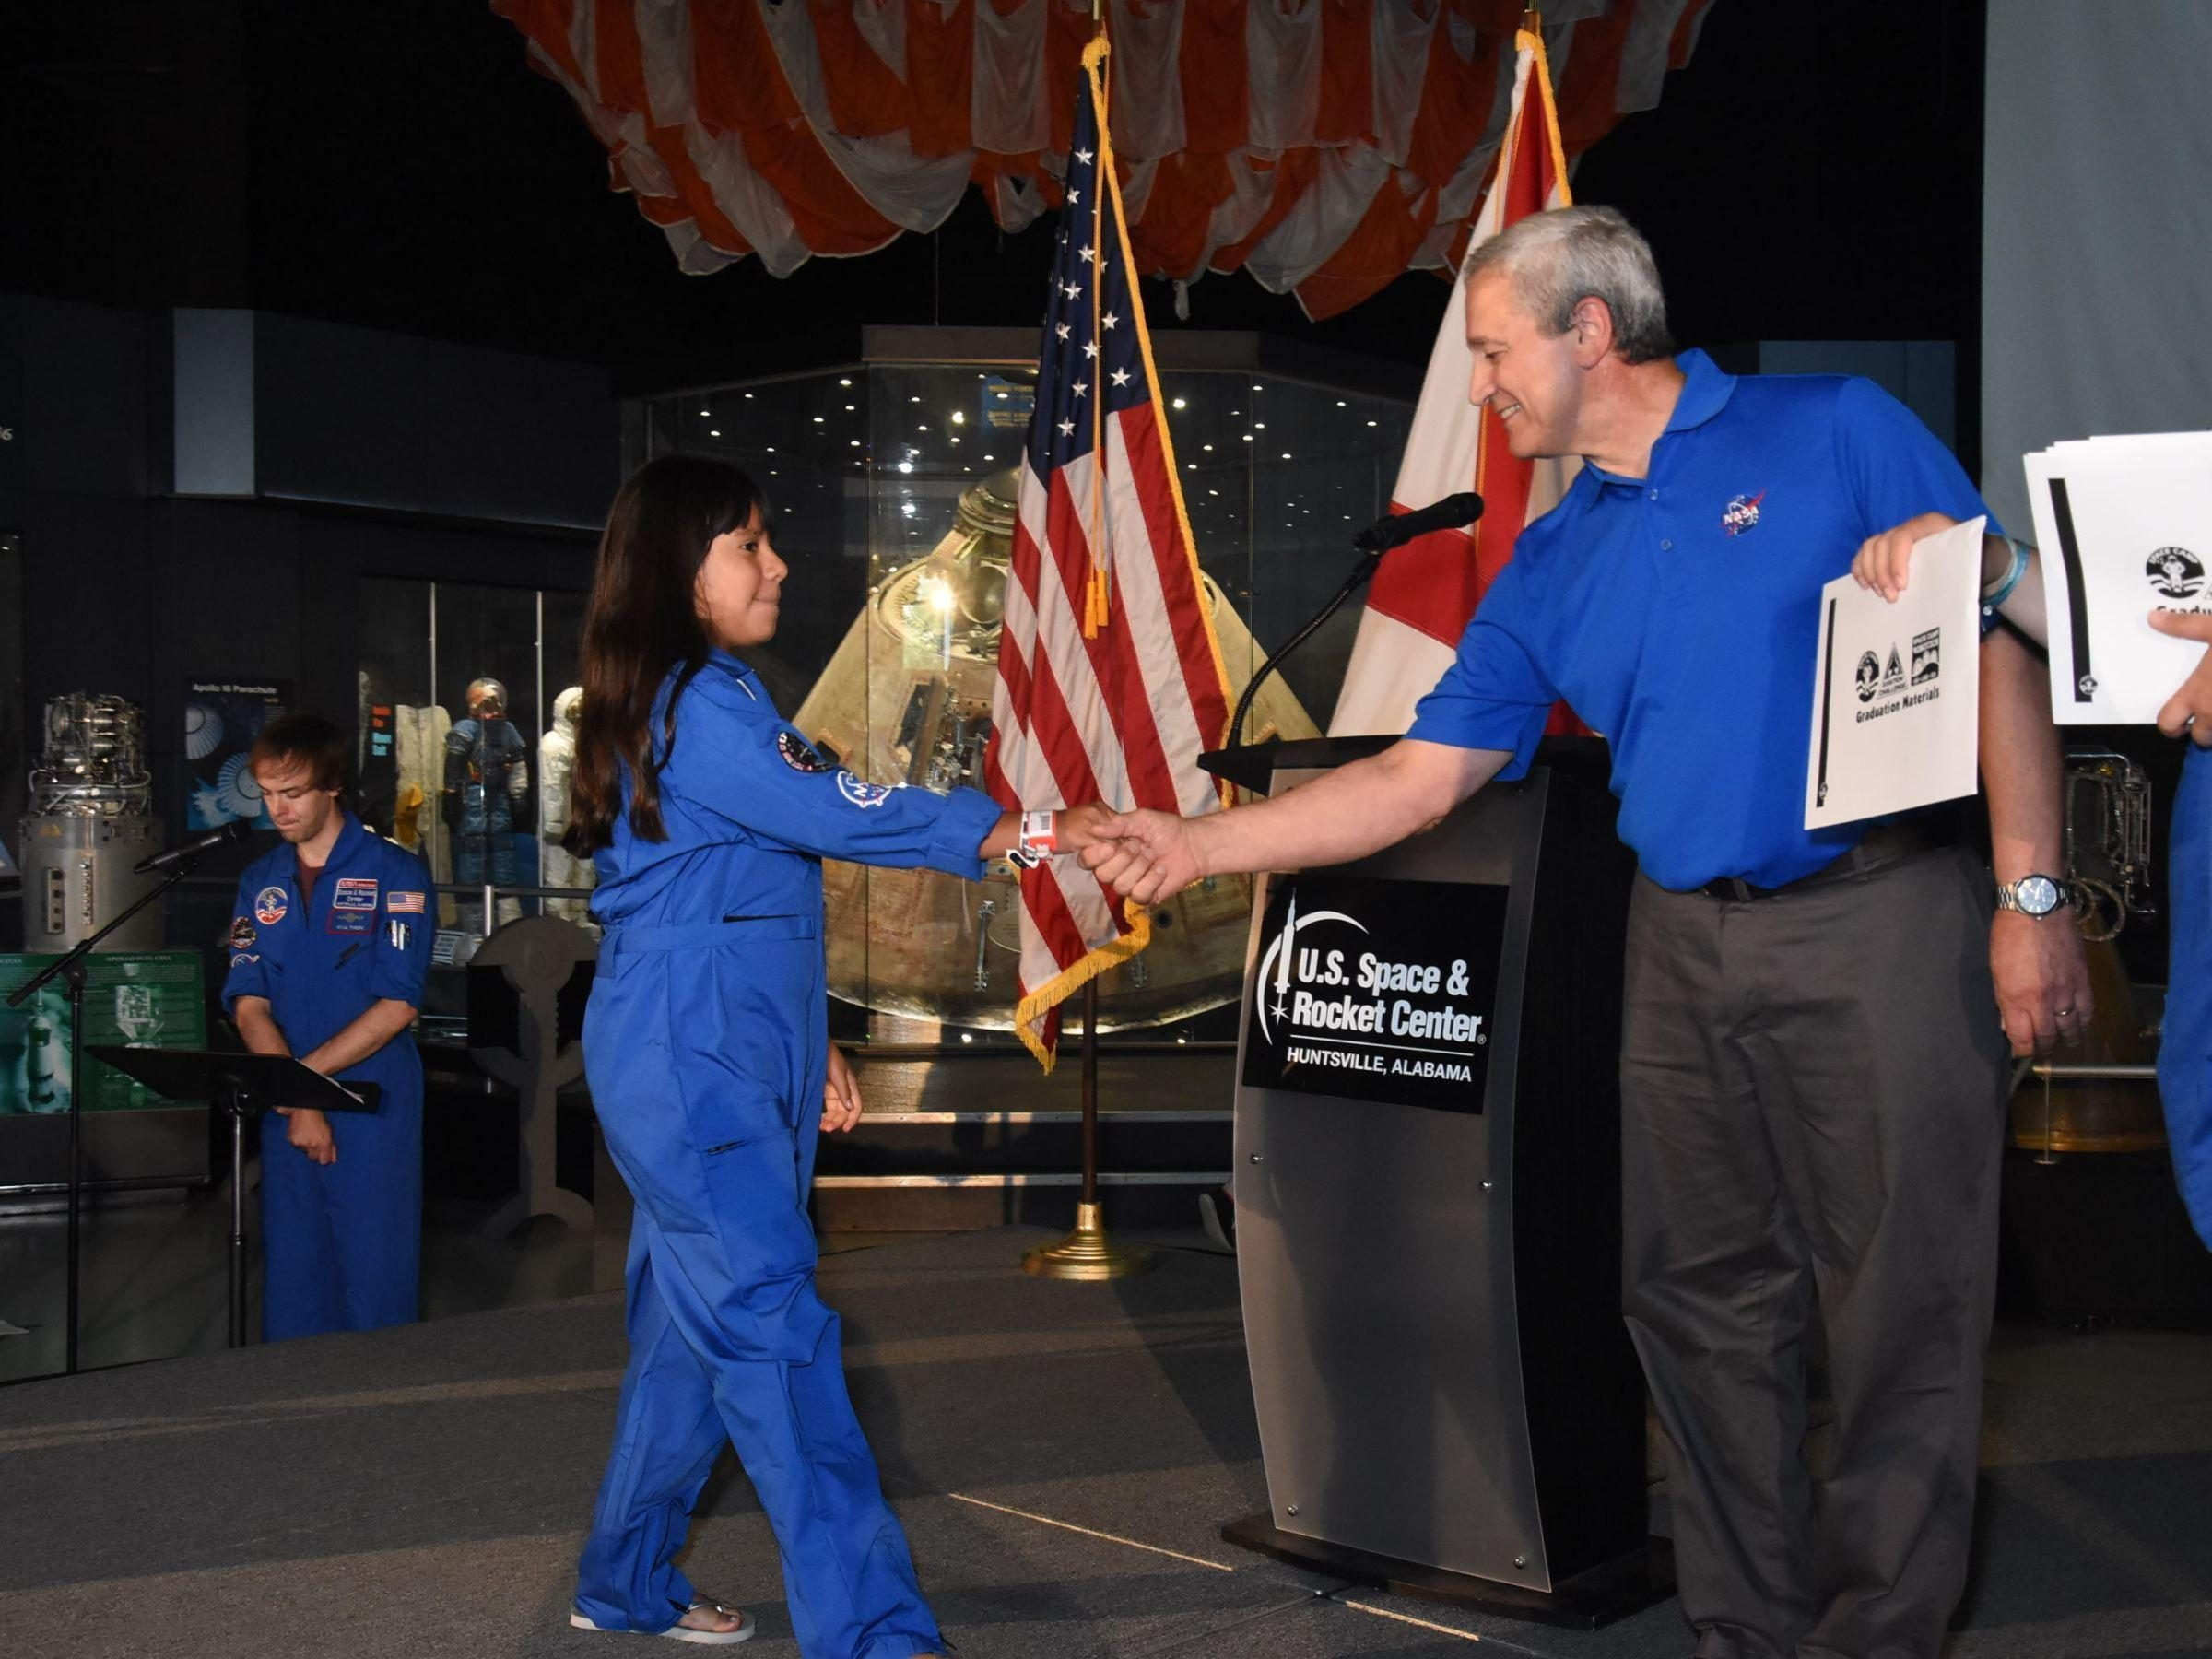 Sole Graduating 2018 with Astronaut Don Thomas